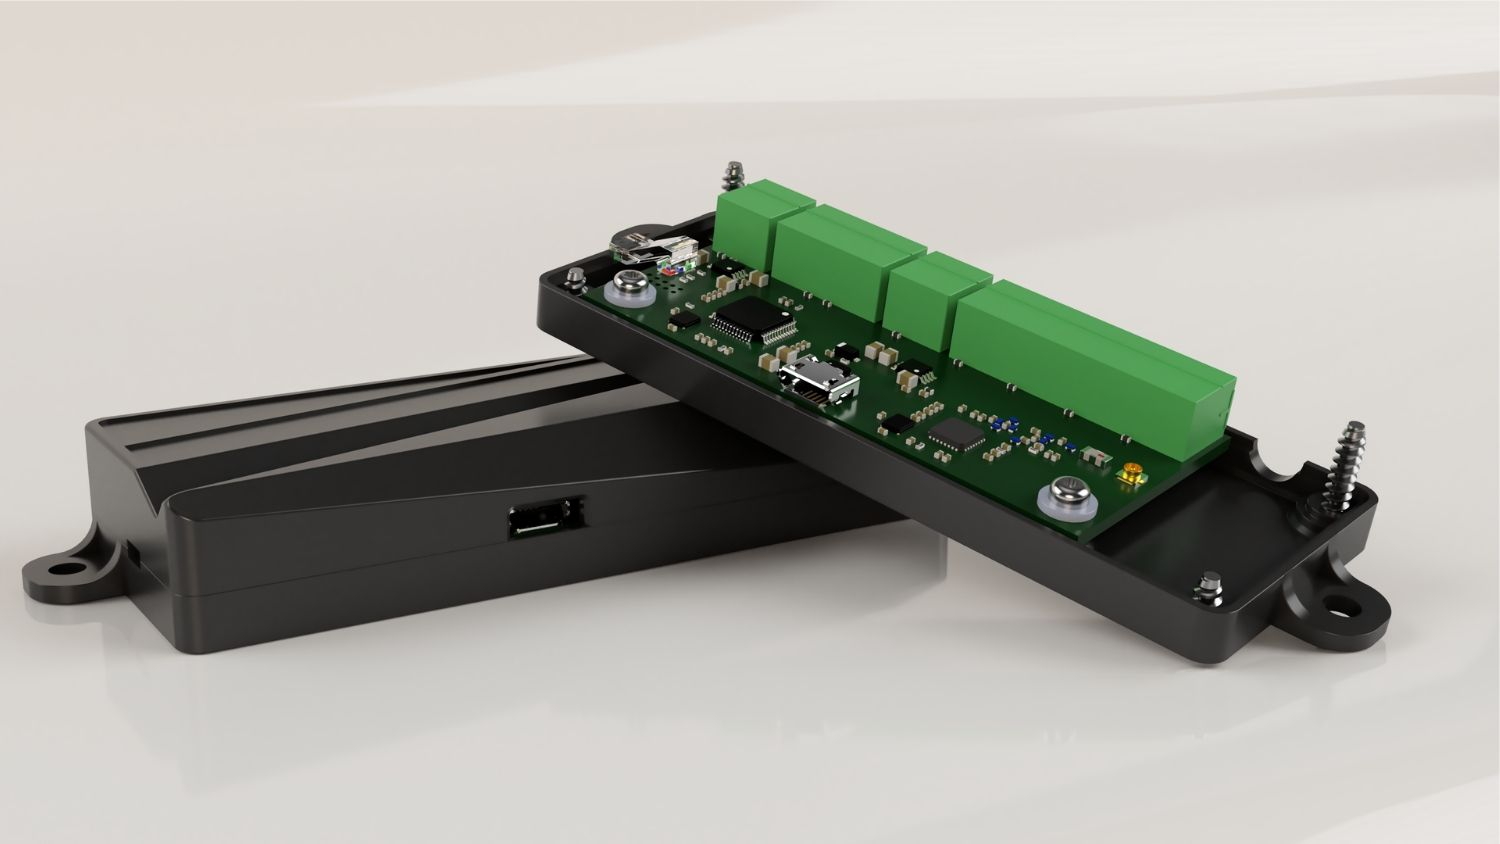 3D render of the finished board within its newly designed enclosure